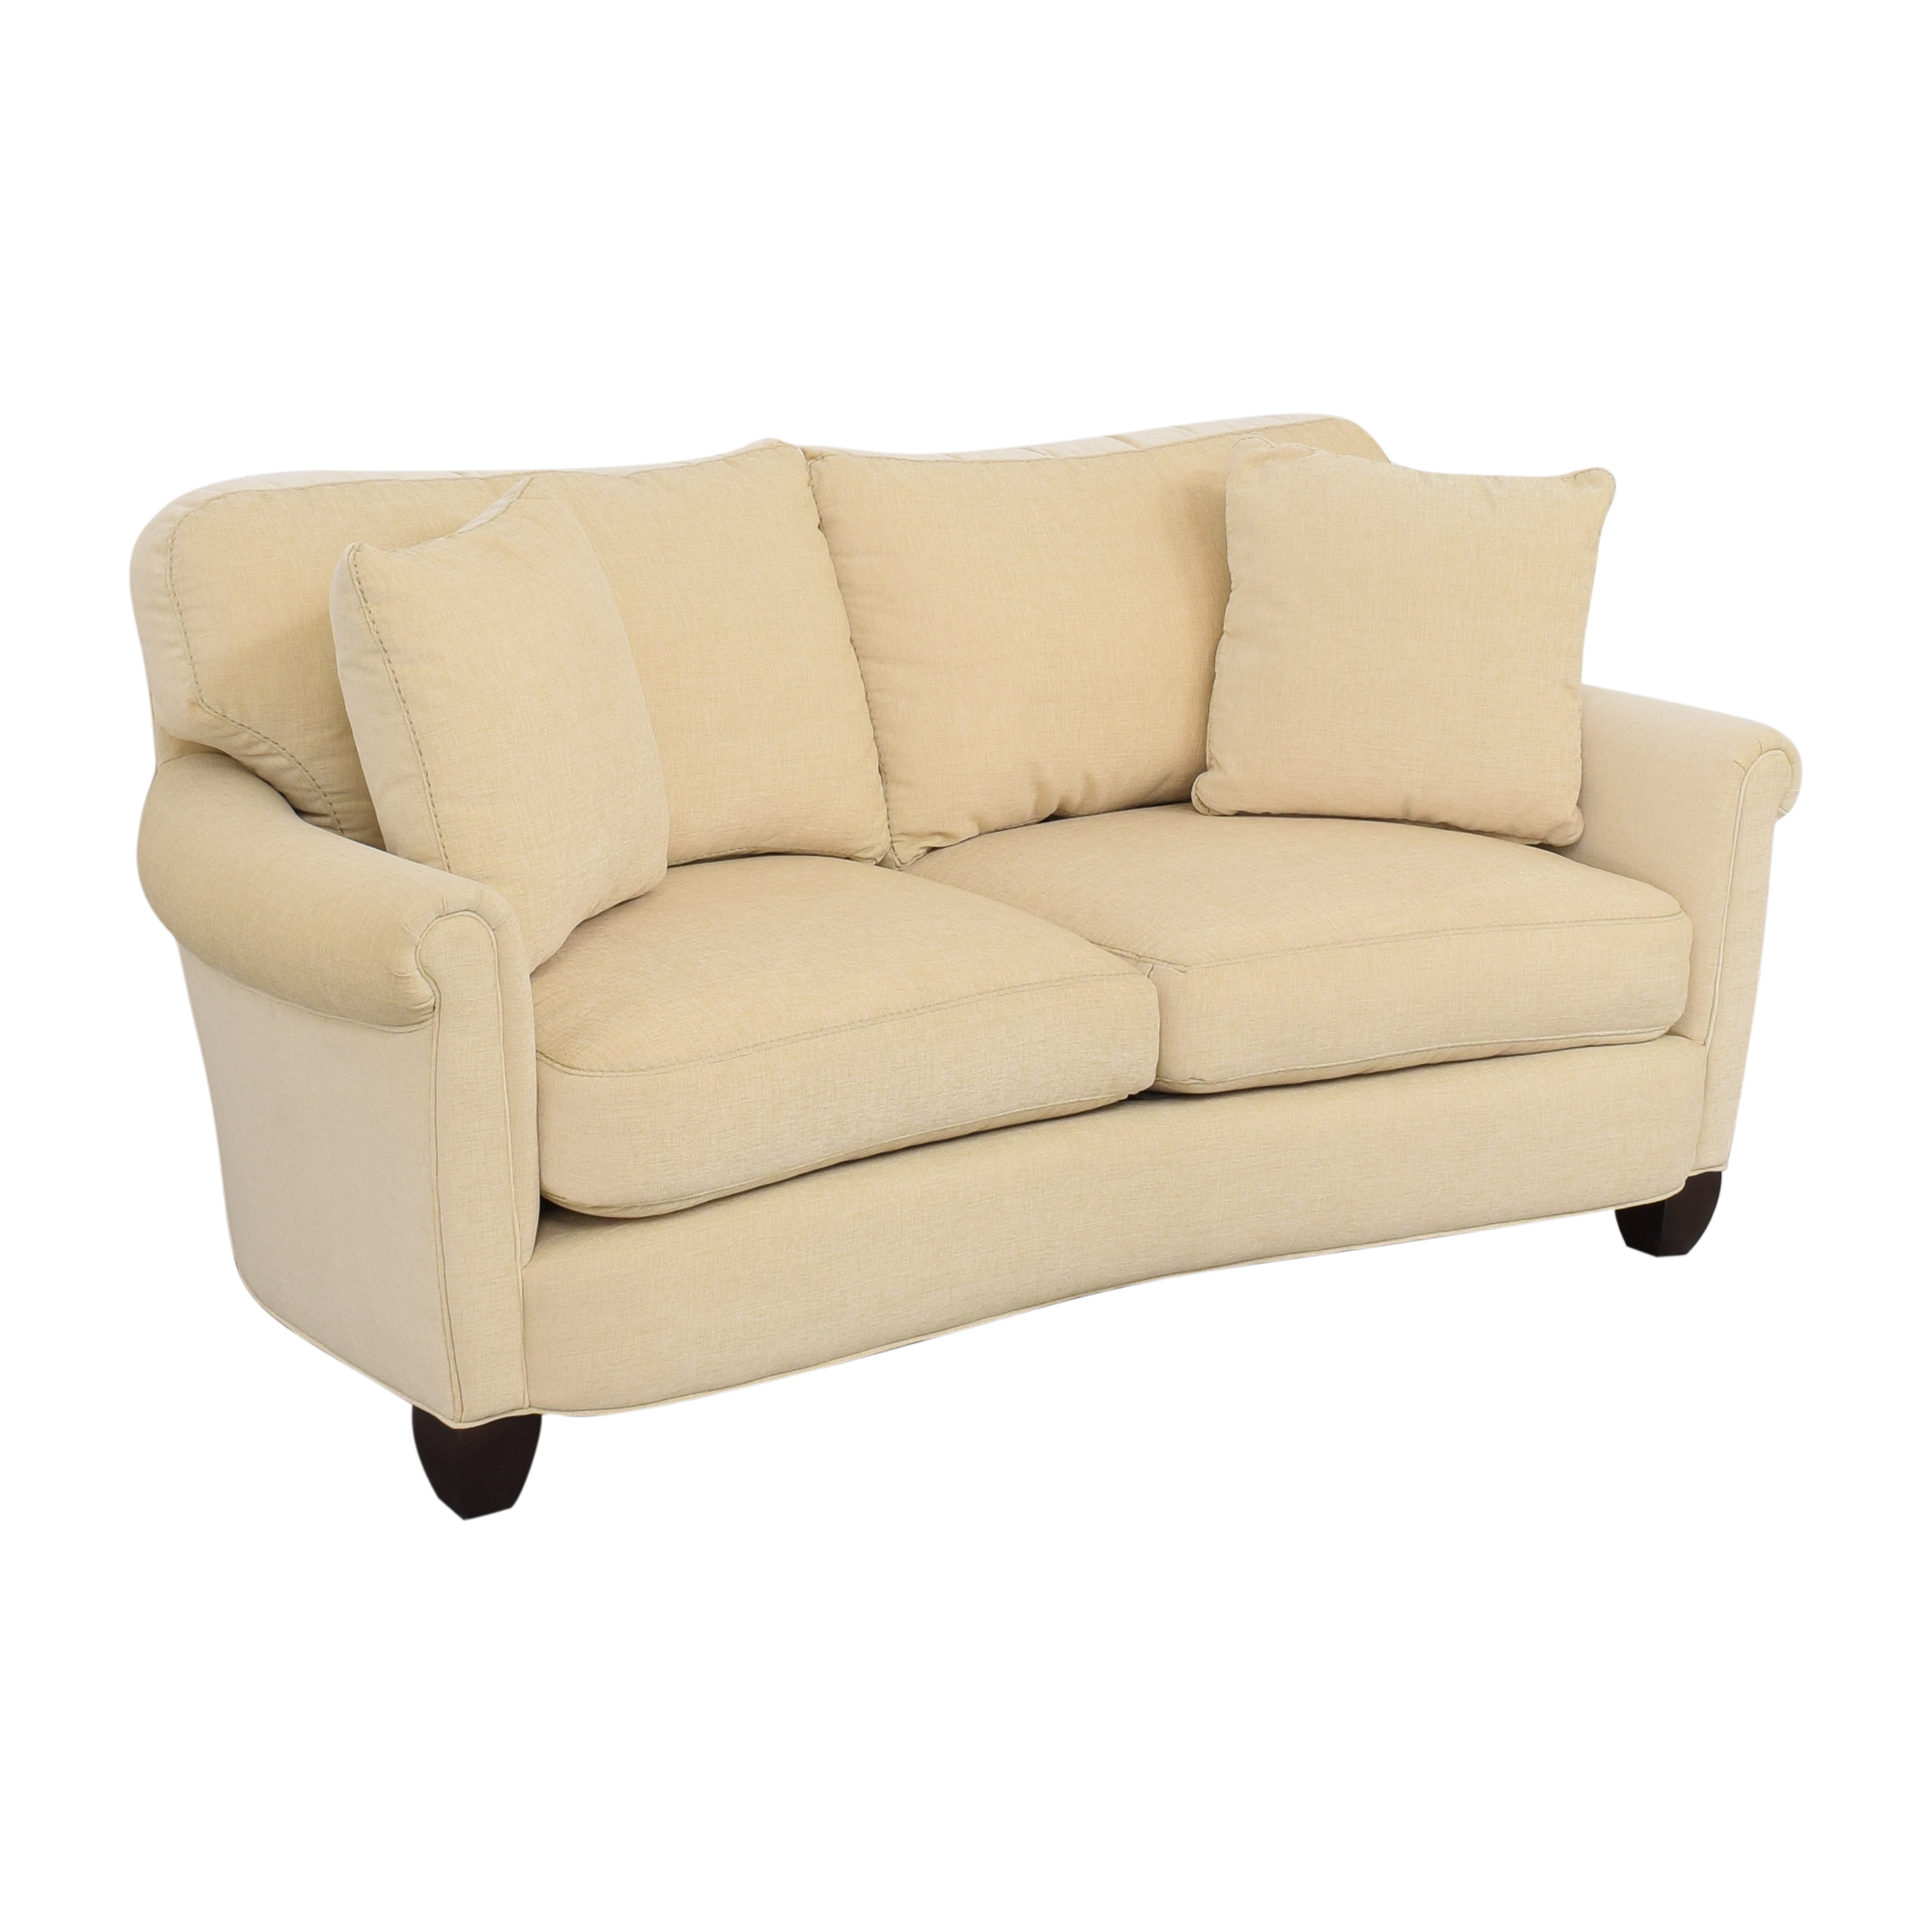 Country Willow Country Willow Apartment Sofa on sale